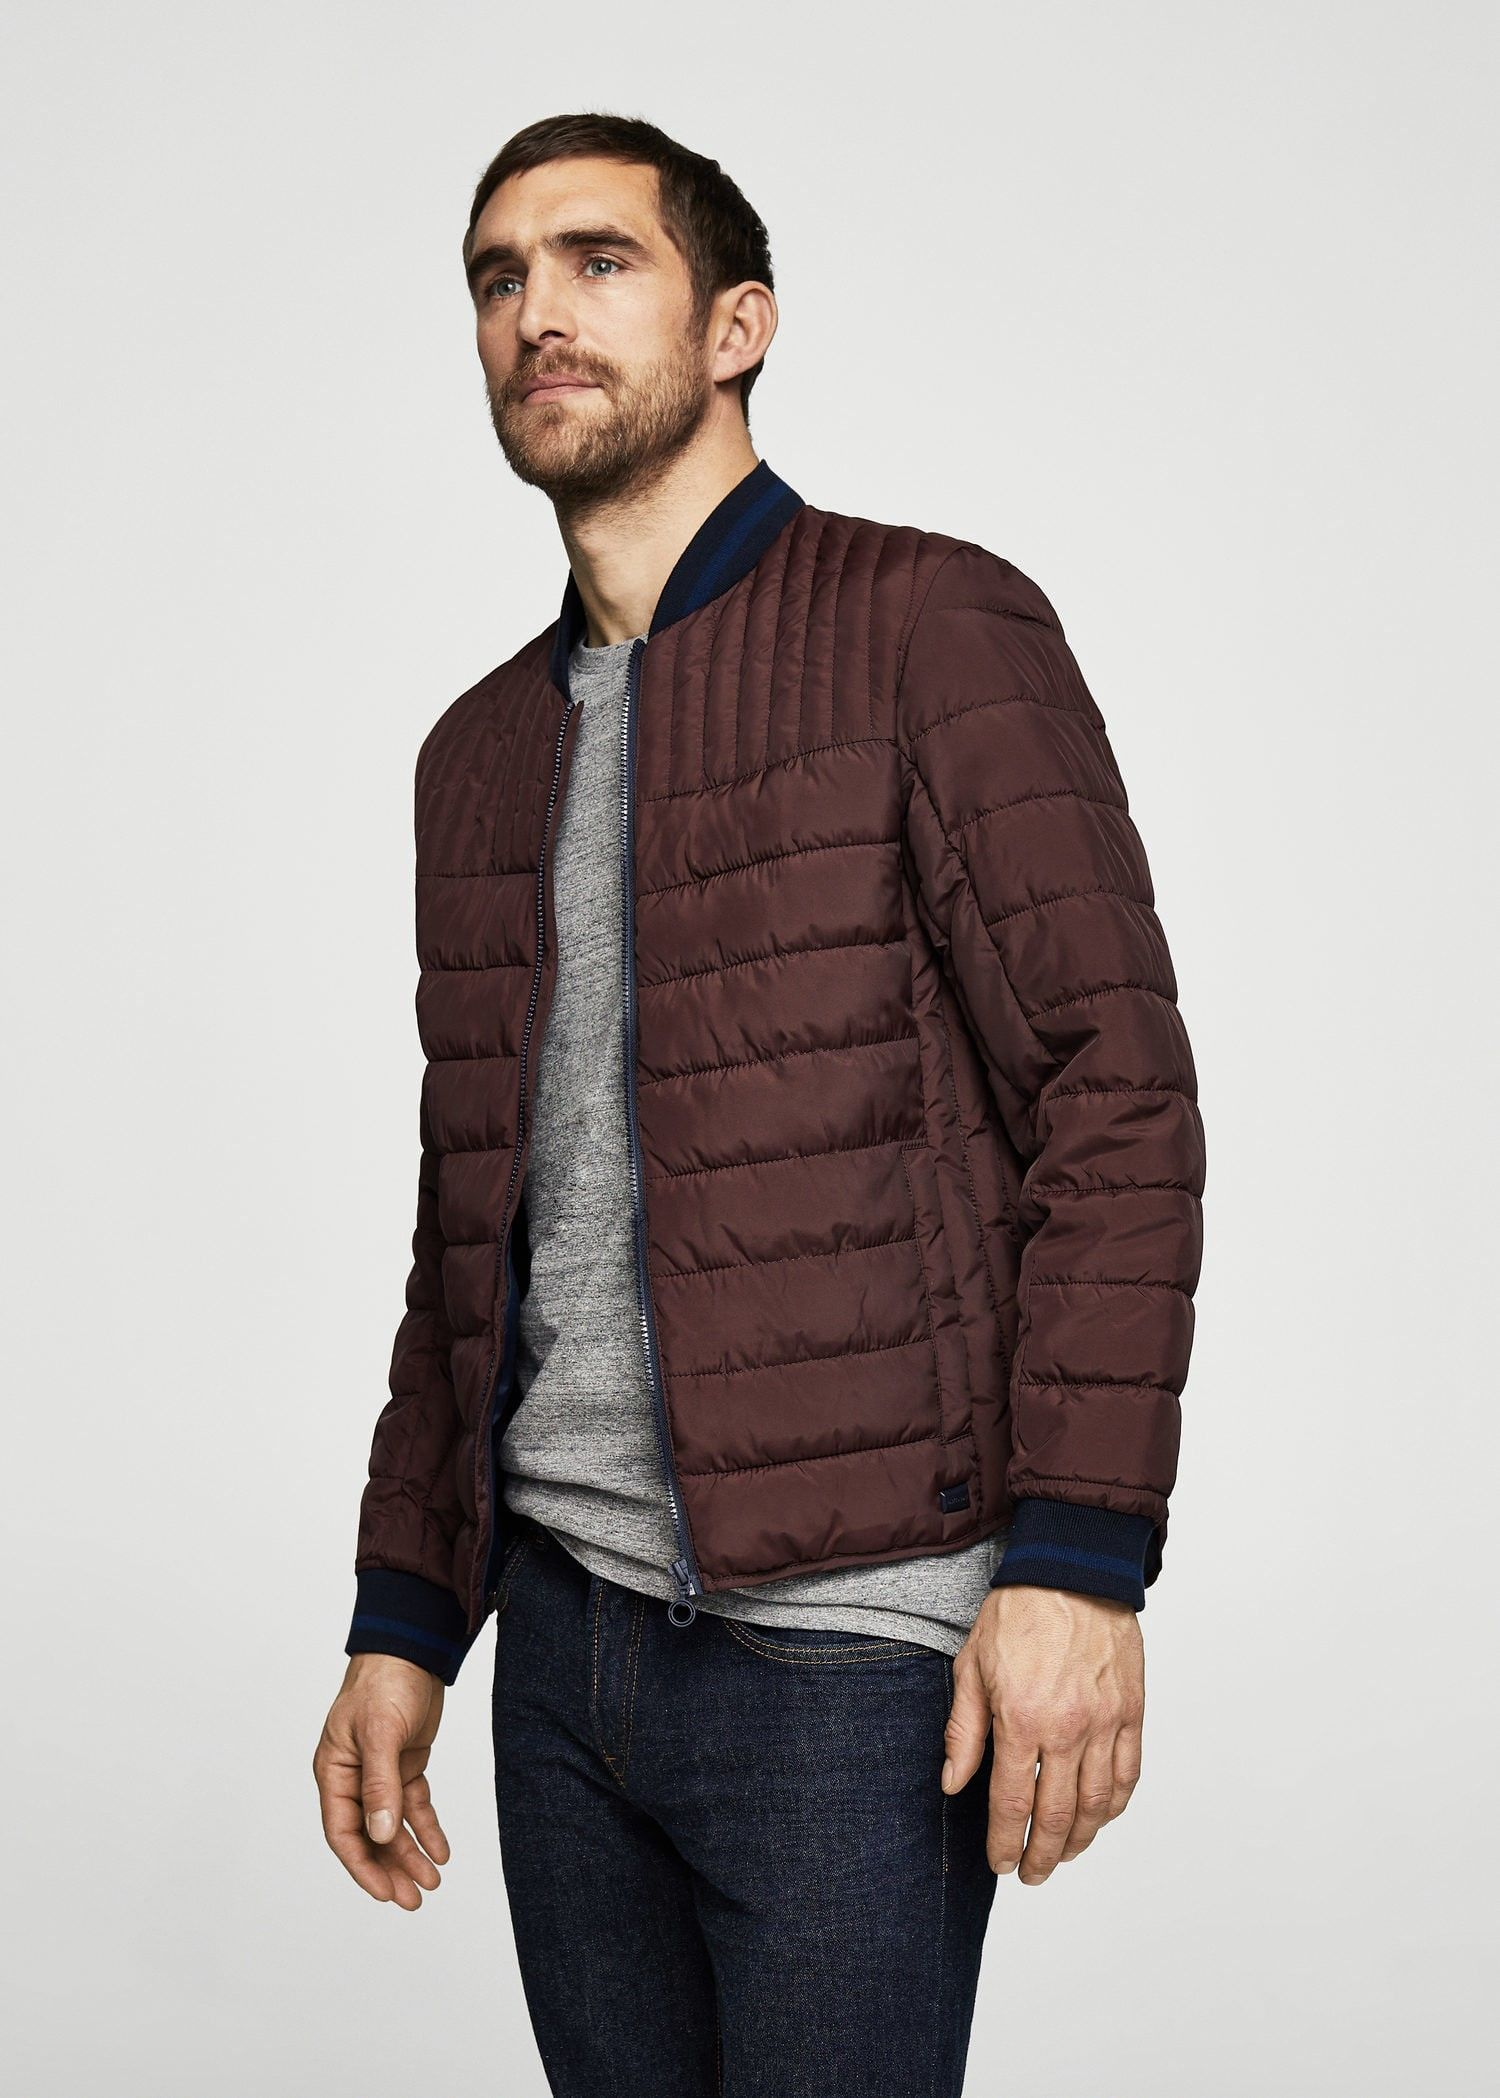 Mango Quilted Bomber Jacket Men Man Xl In 2019 Bomber Jacket Men Jackets Bomber Jacket